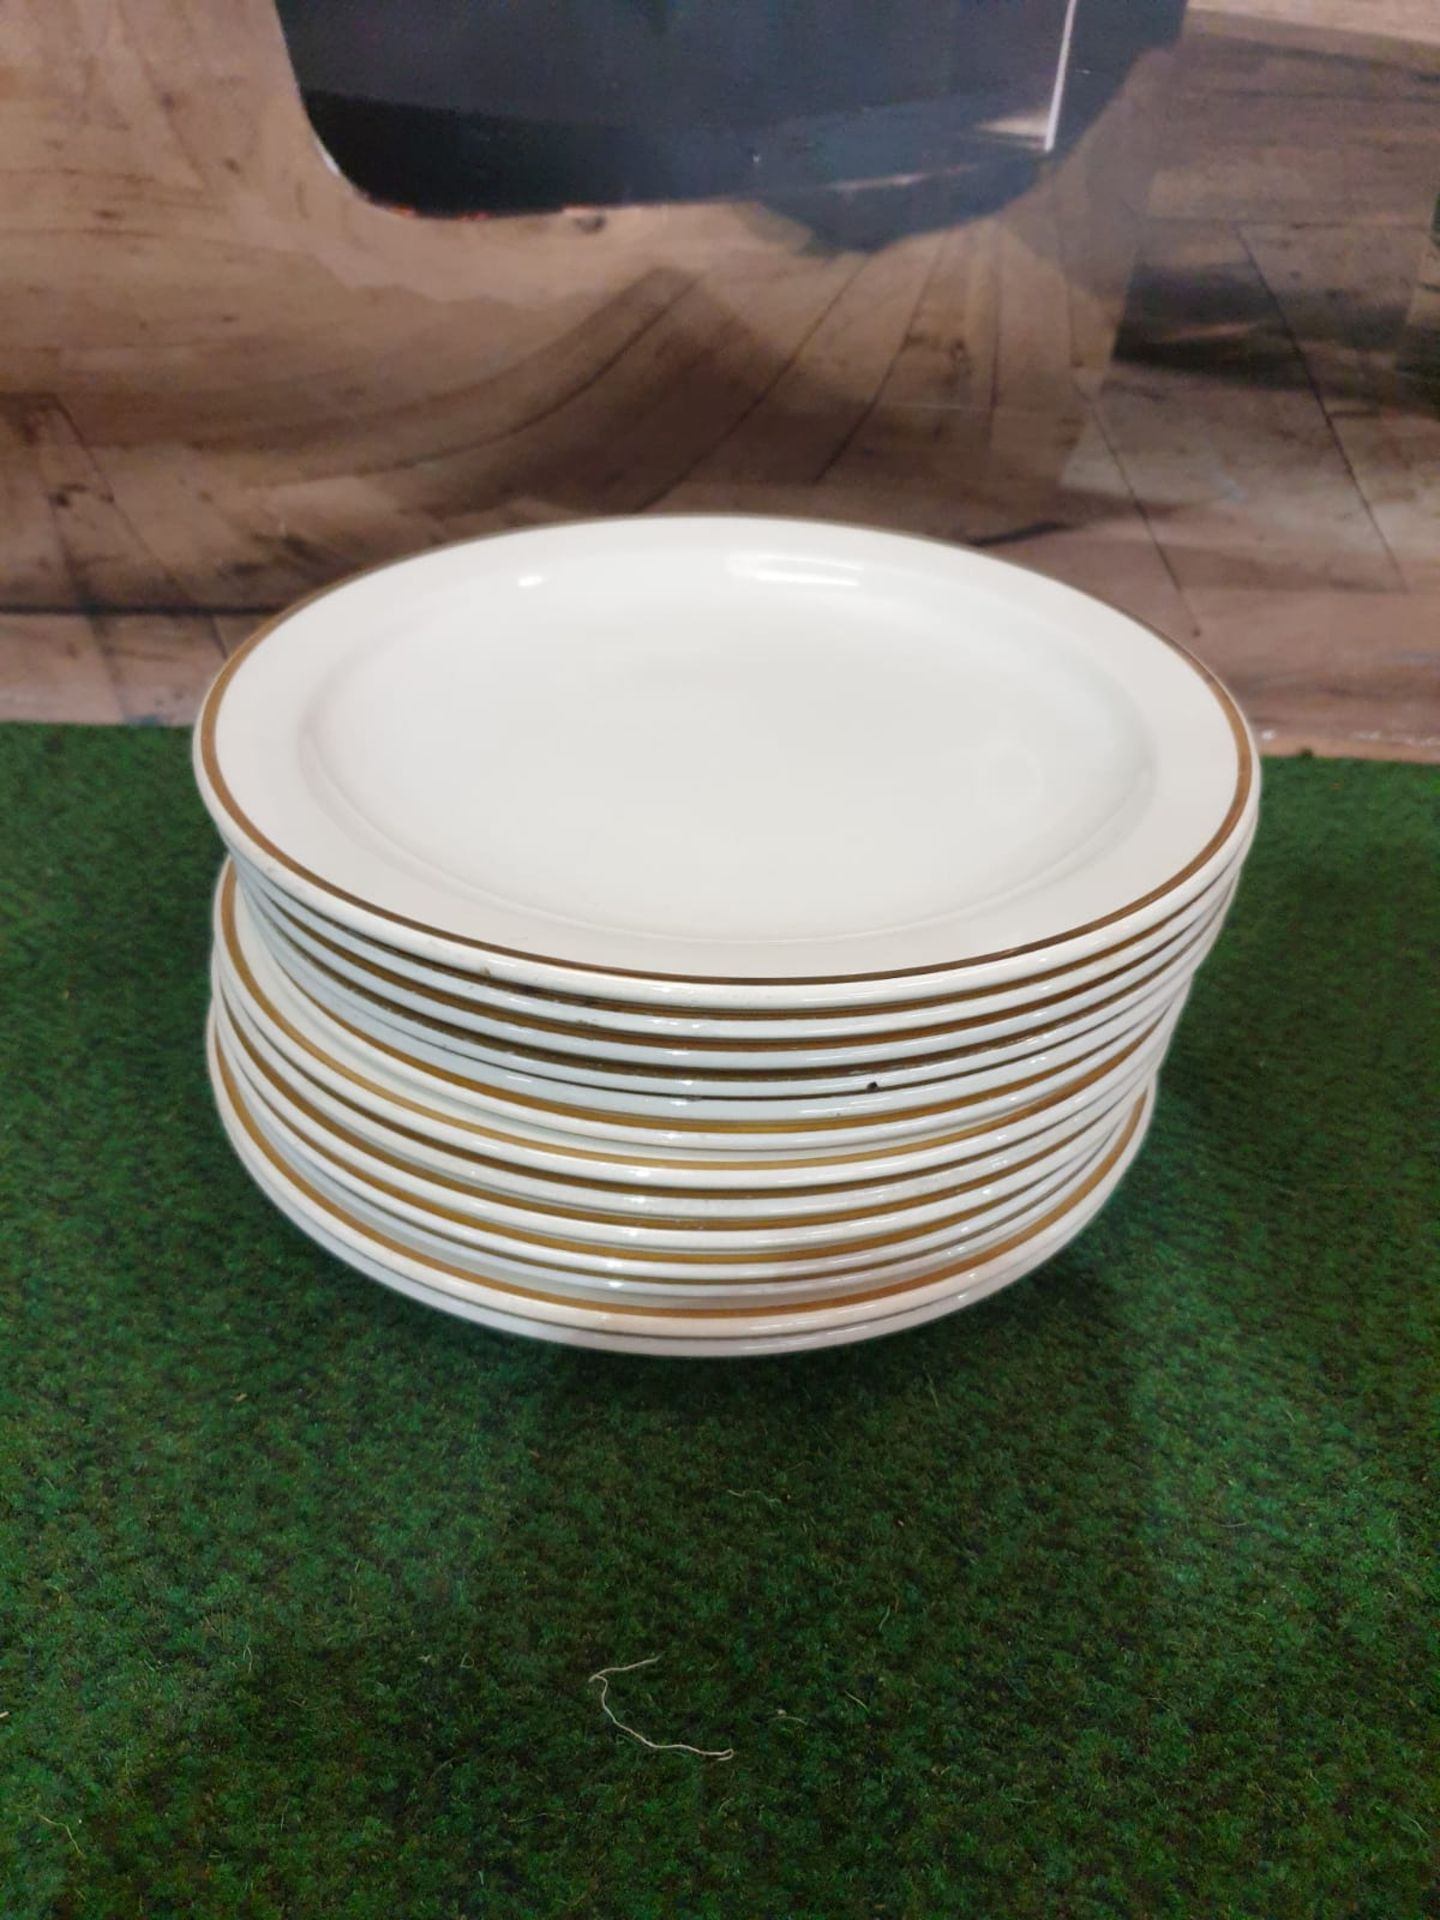 13 x Crown Ducal England Dinner plates White Gold rim 1971 - Image 2 of 3